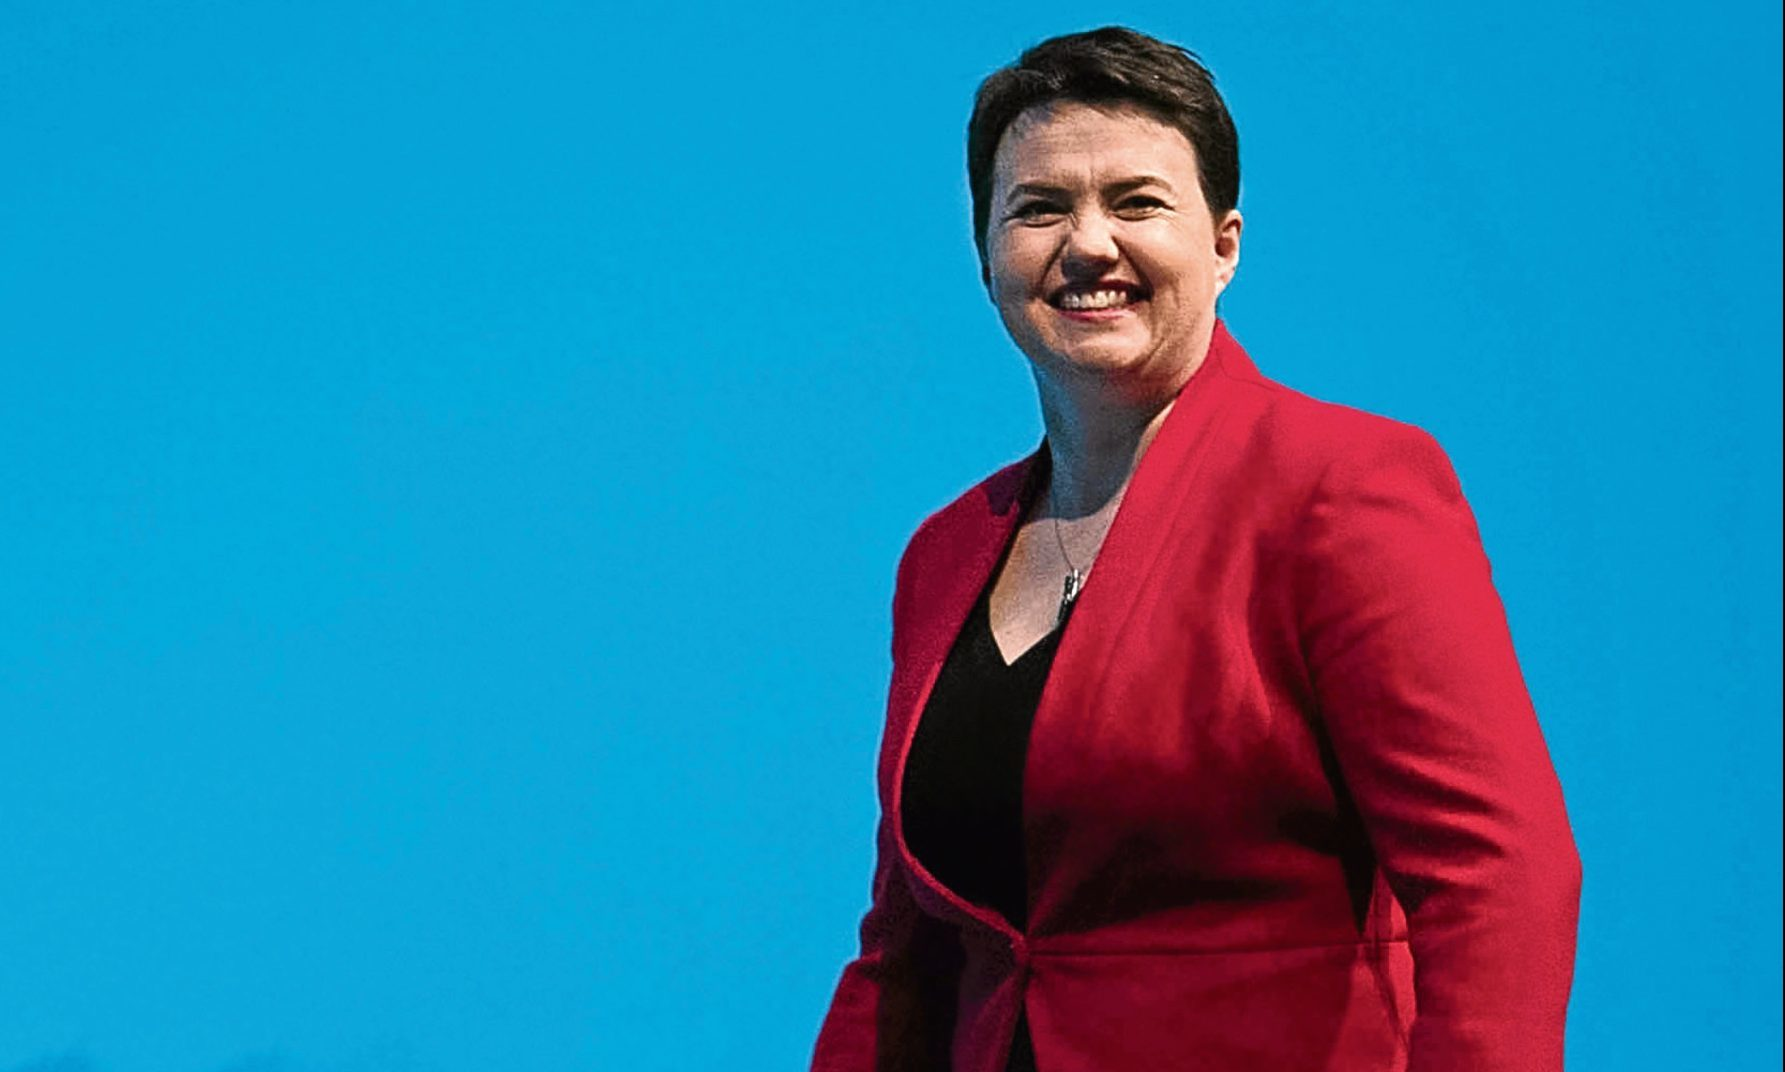 Ruth Davidson at the Conservative Party conference.